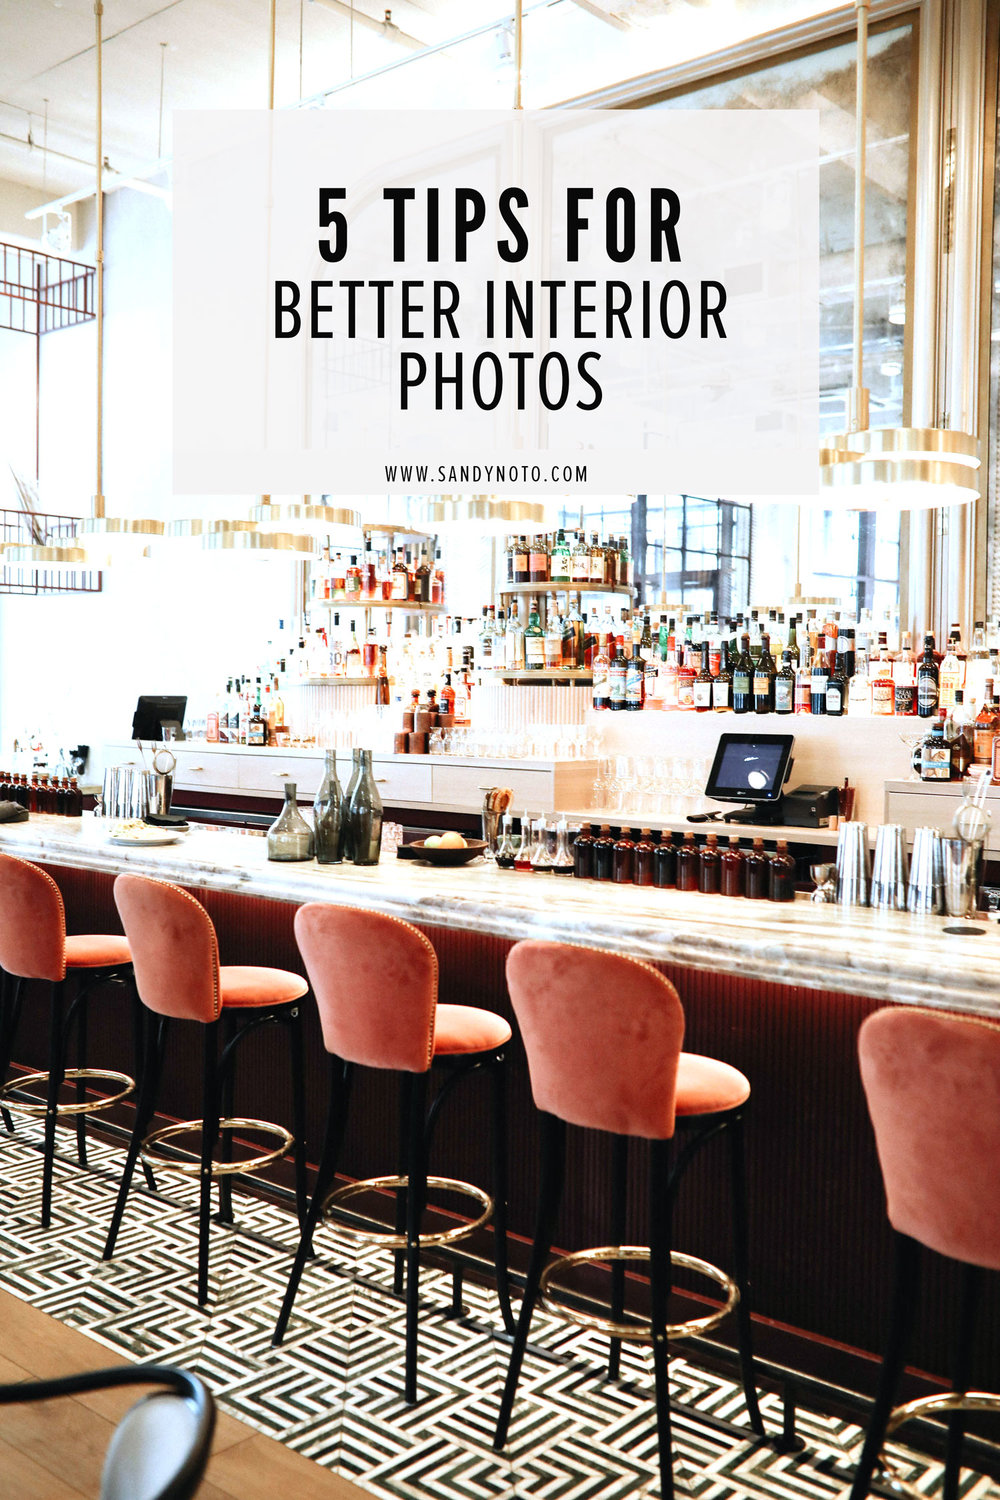 5 Tips for Better Interior Photographs